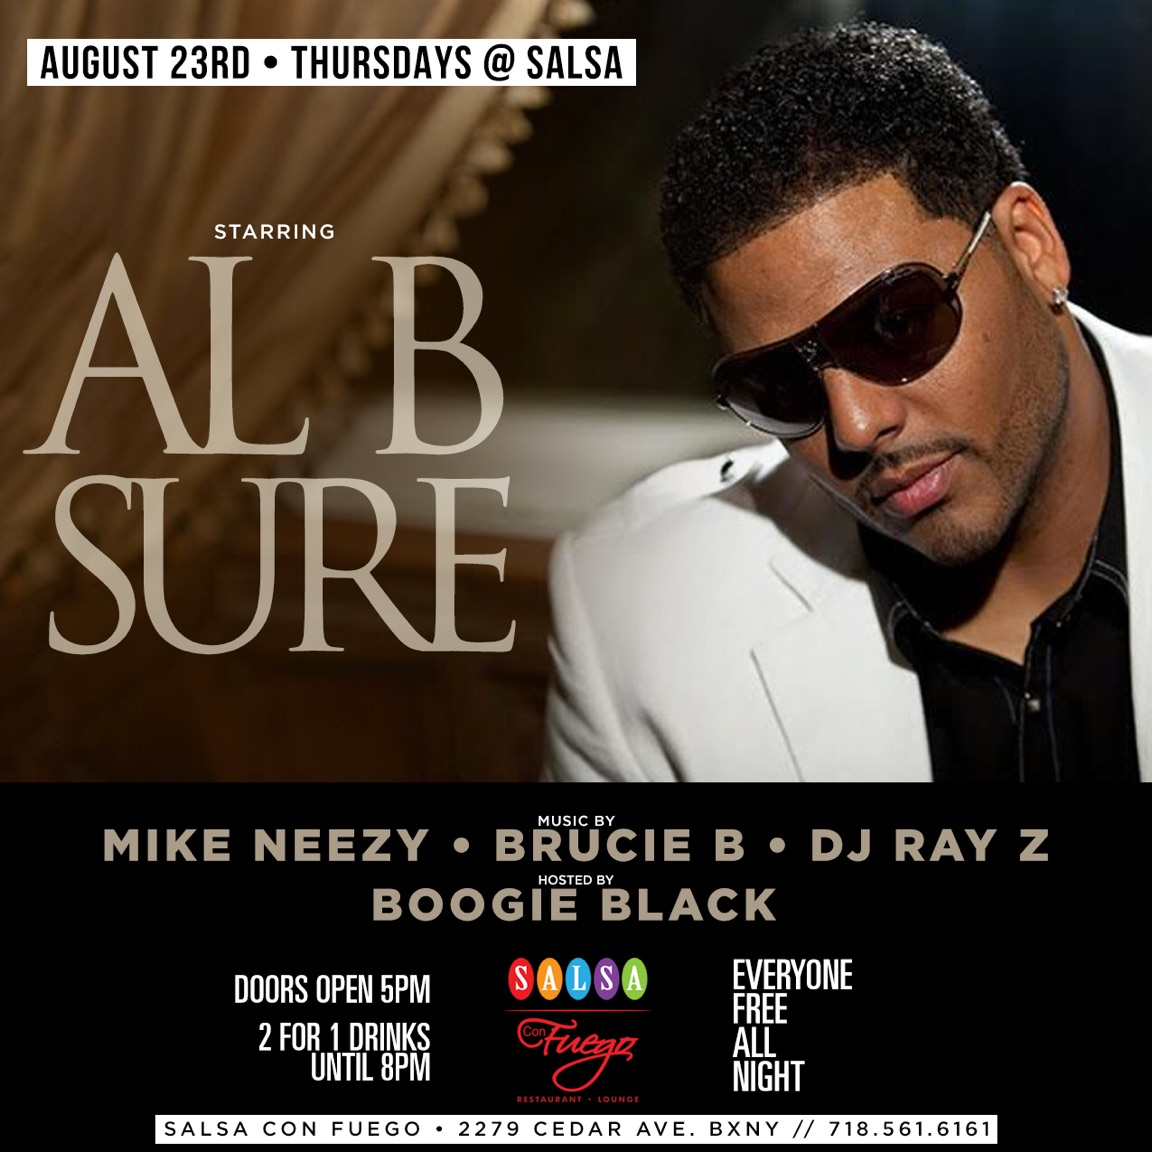 Al B. Sure! to perform @ Salsa in Bronx NY Thursday August 23rd, 2018